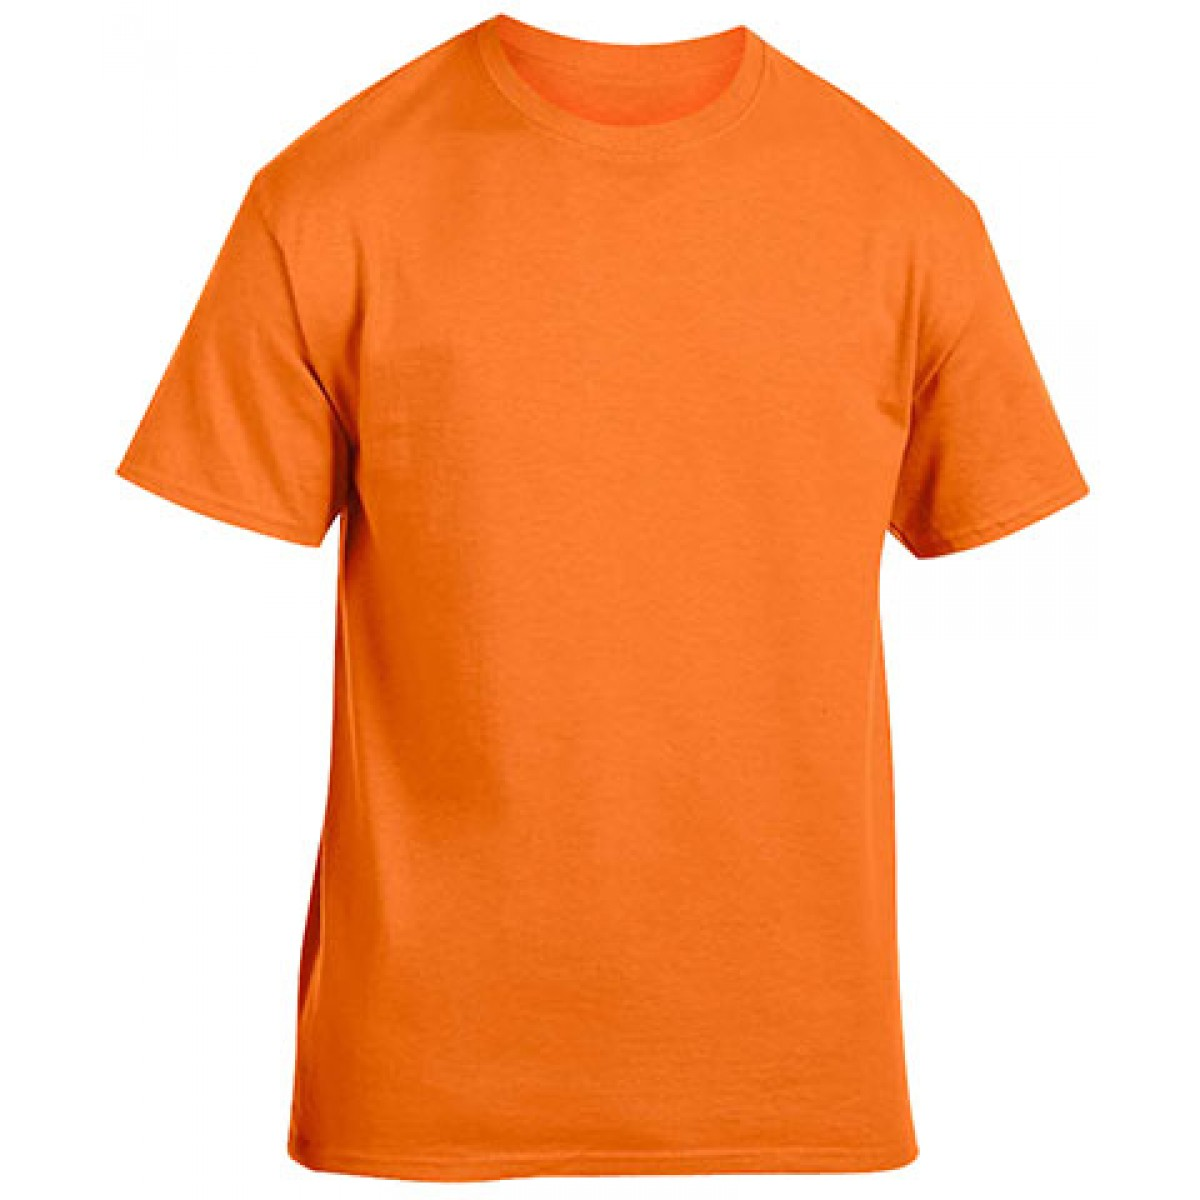 Cotton Short Sleeve T-Shirt-Safety Orange-XS